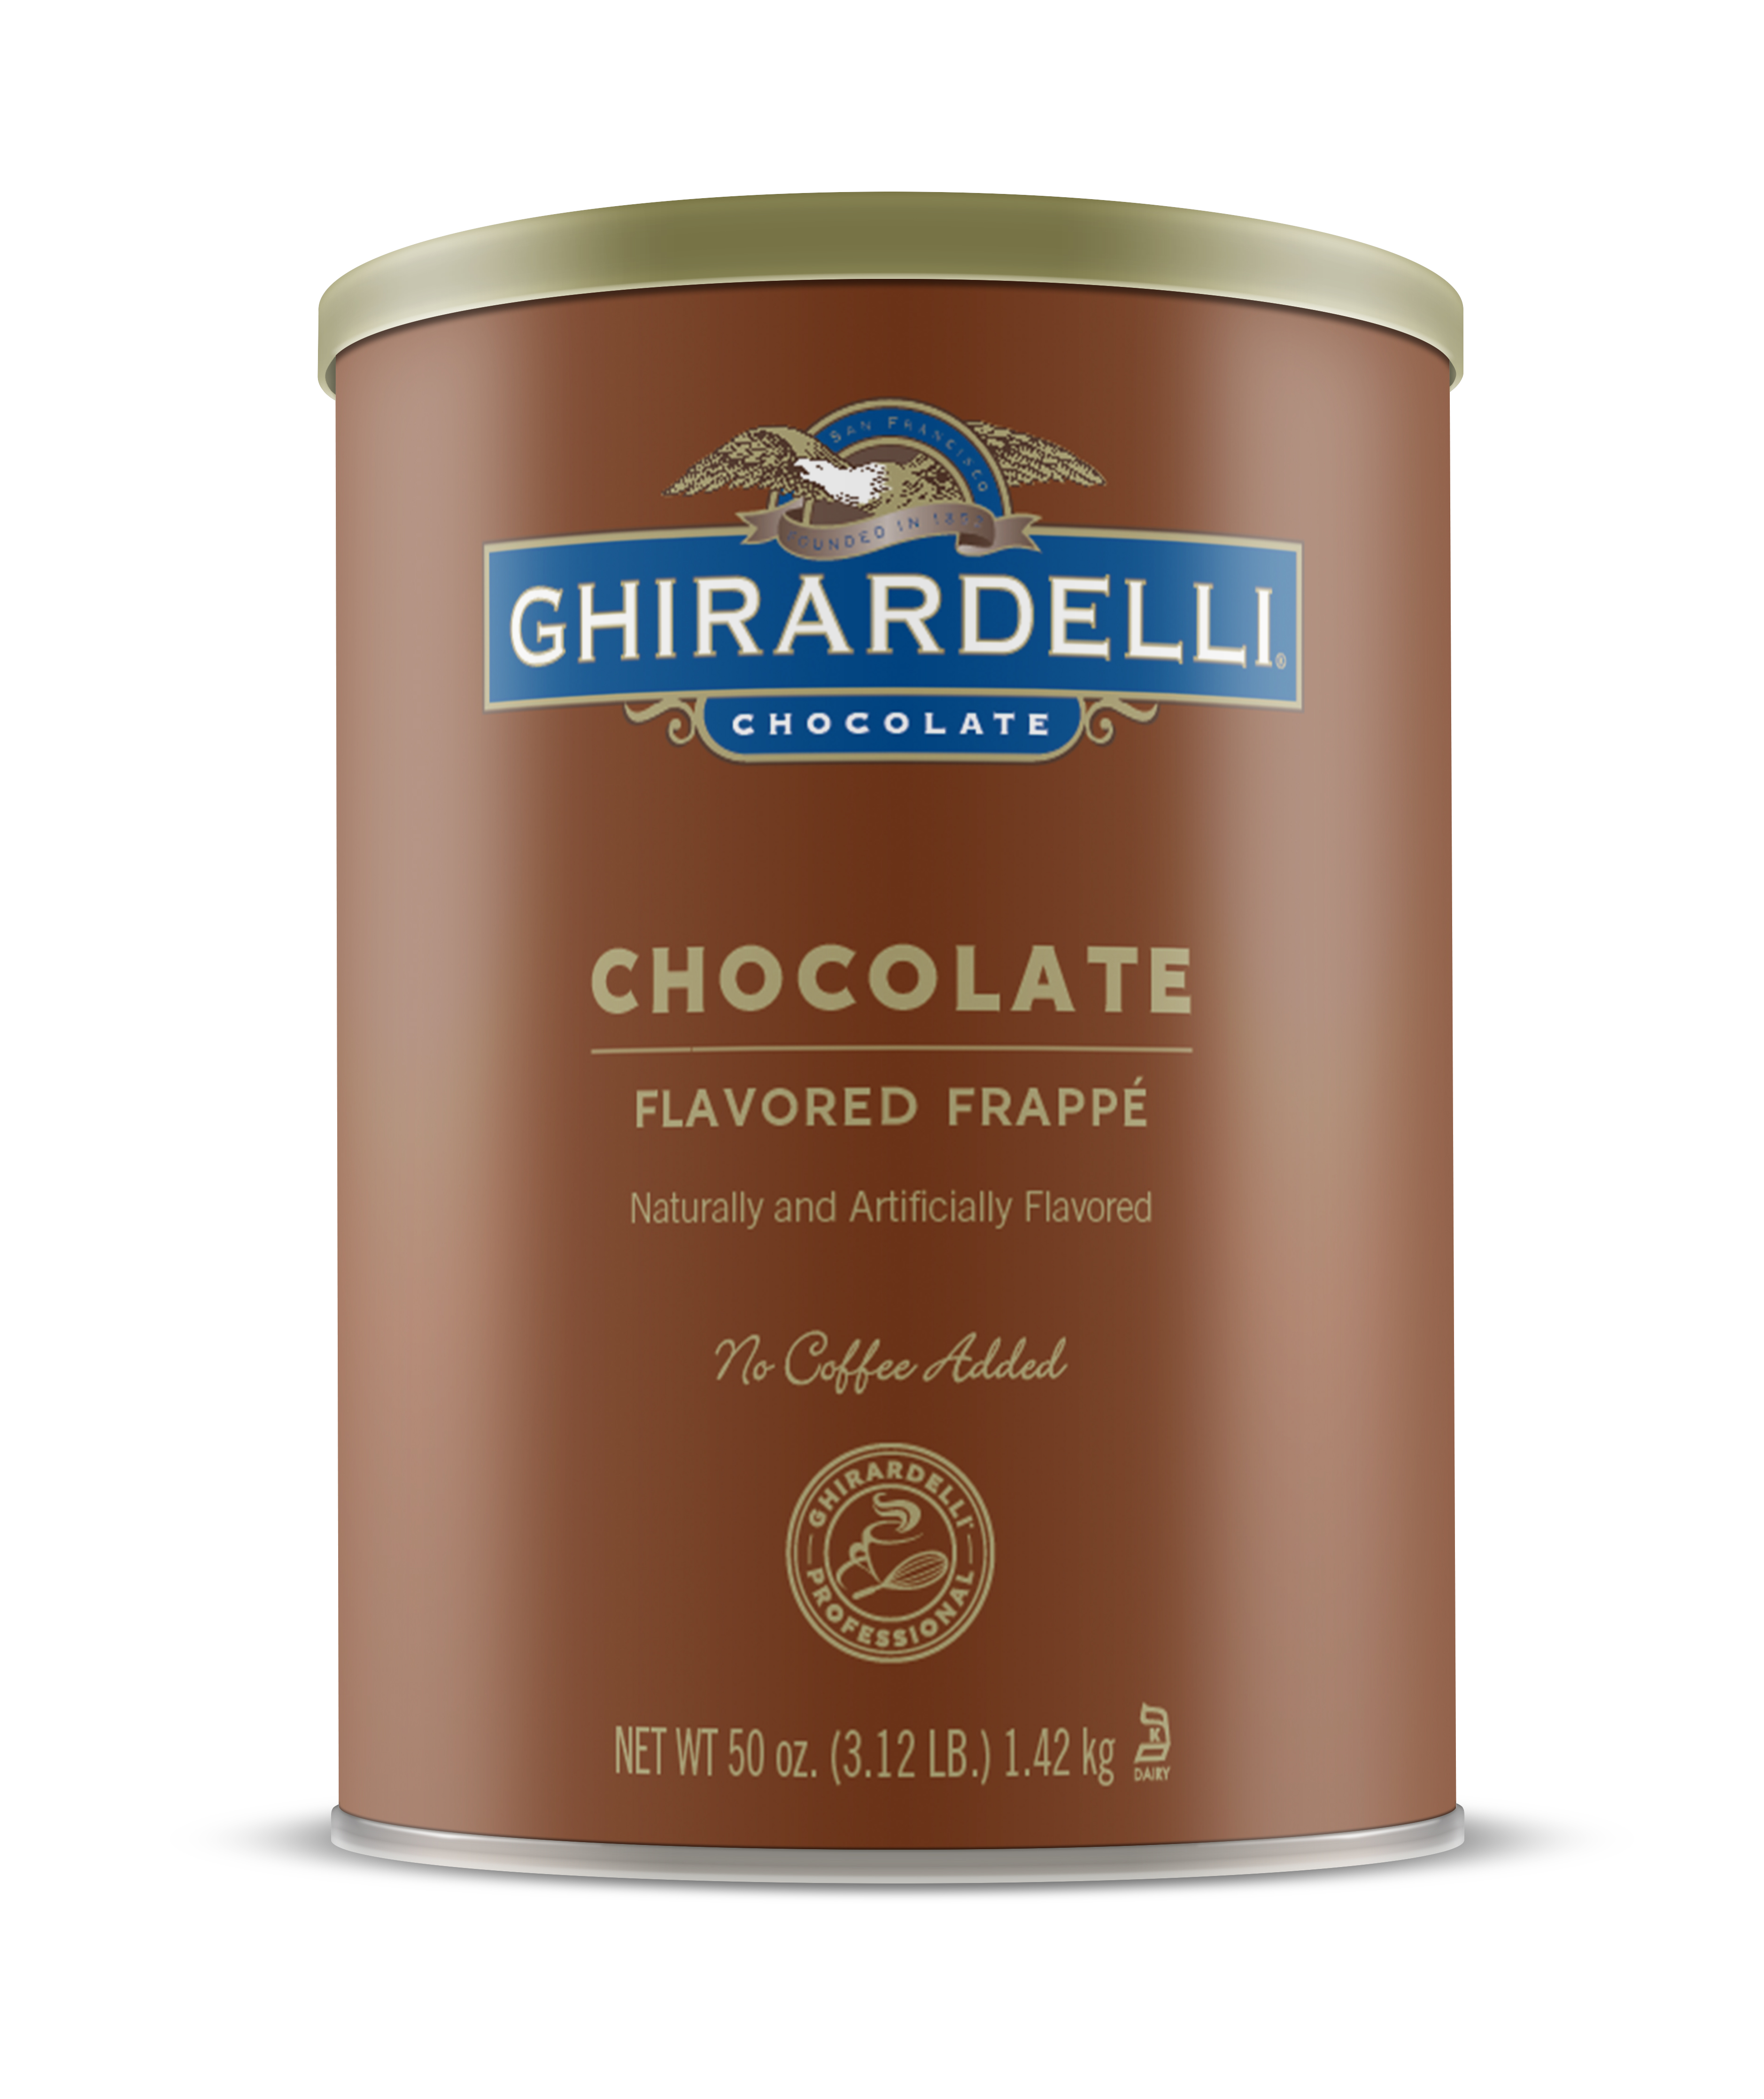 Image for Chocolate Frappé (6 ct. / 3.12 lbs. ea) from Ghirardelli